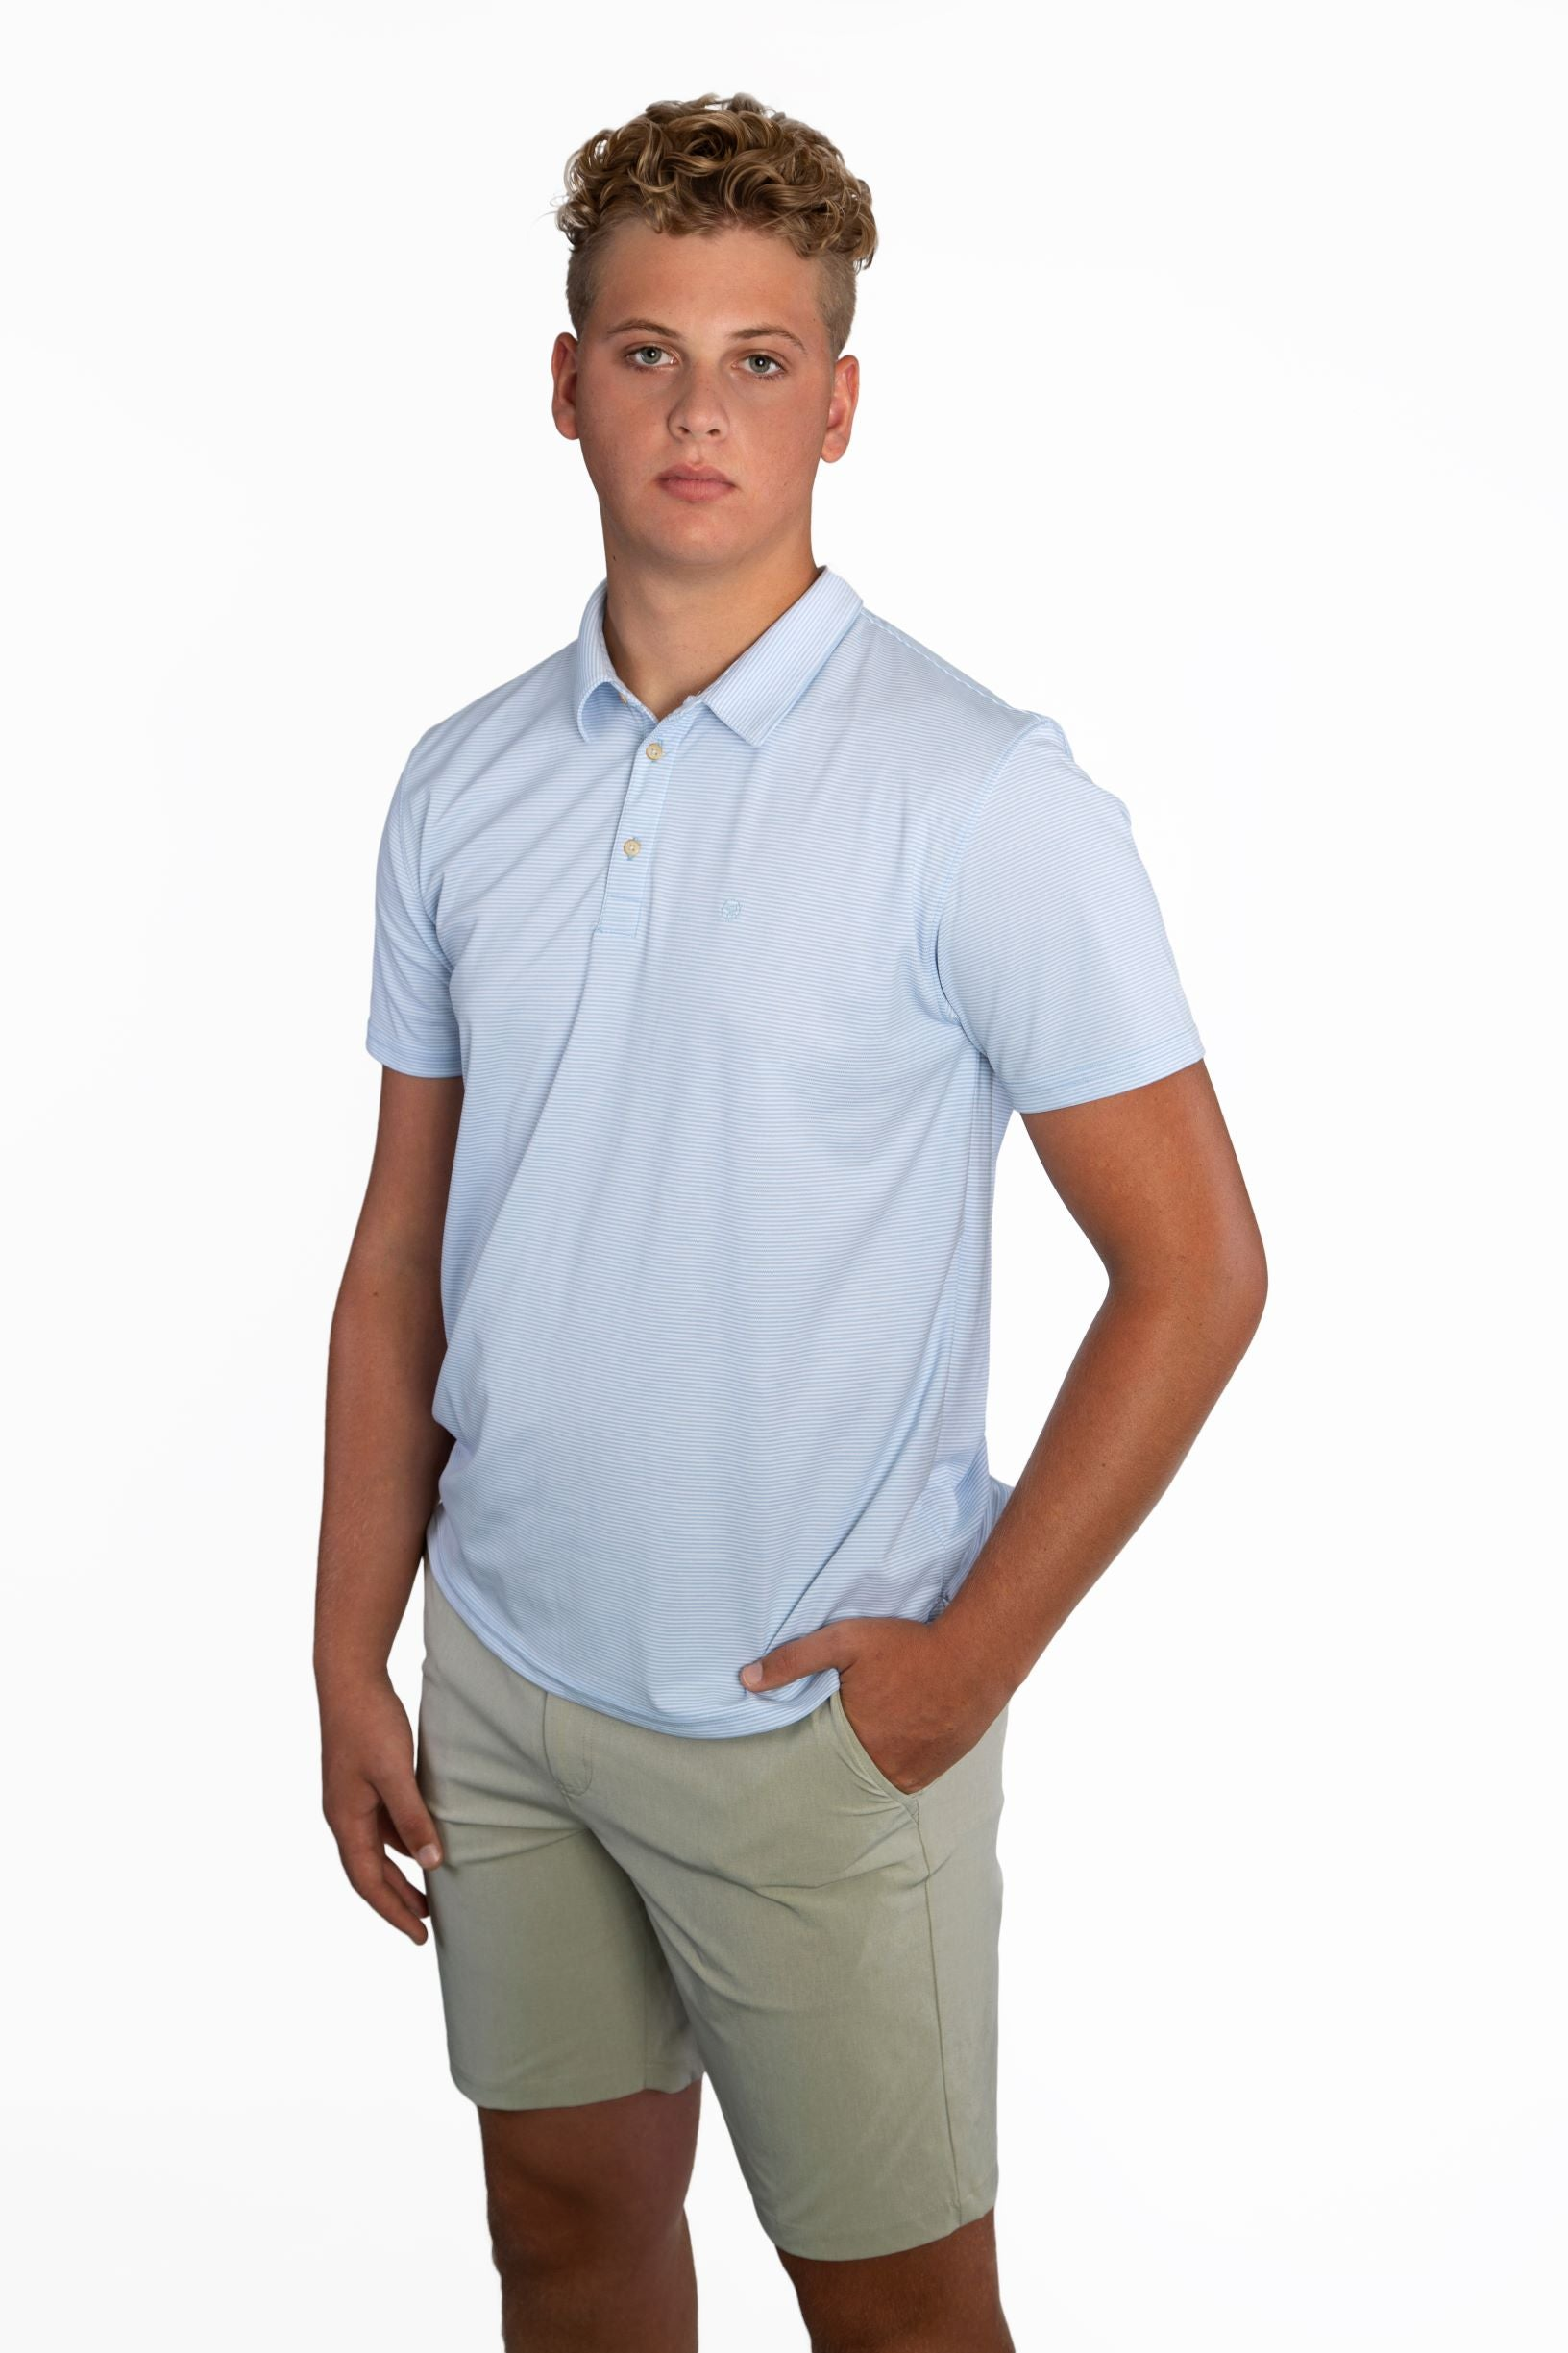 EVERYWHERE SAND TECH POLO BLUE/WHITE MICORSTRIPES